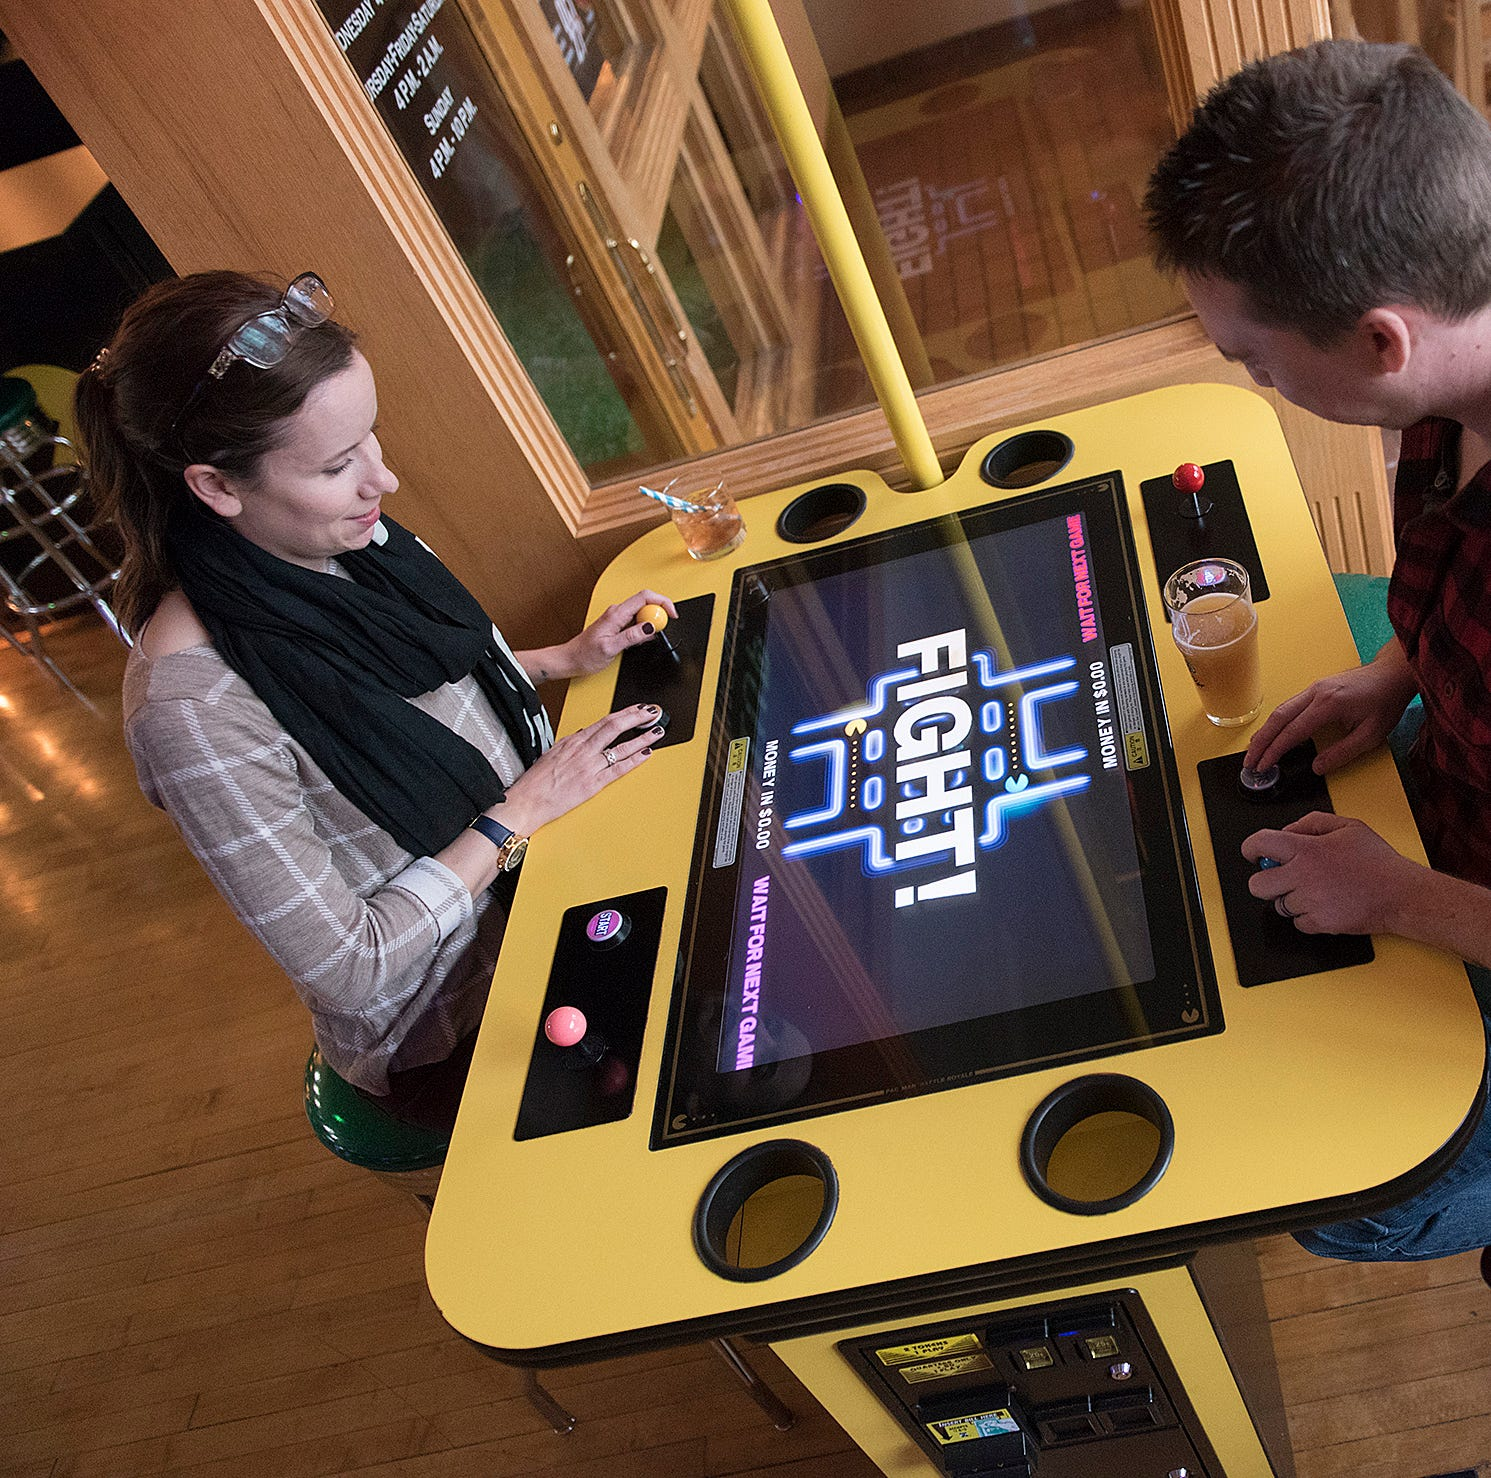 New arcade cocktail bar is for 'kids that never grew up'